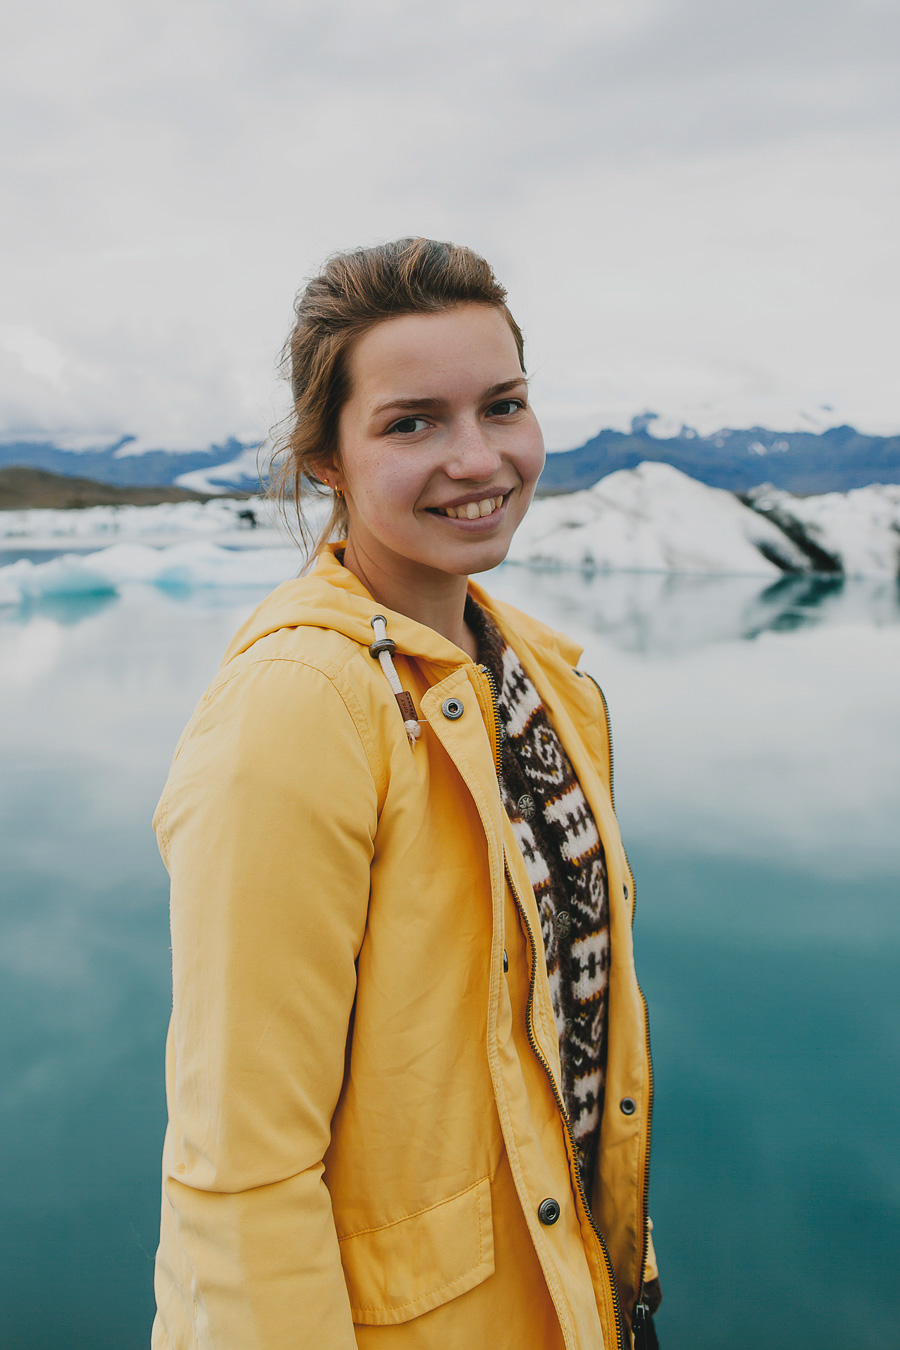 Girl wearing a yellow jacket in Iceland